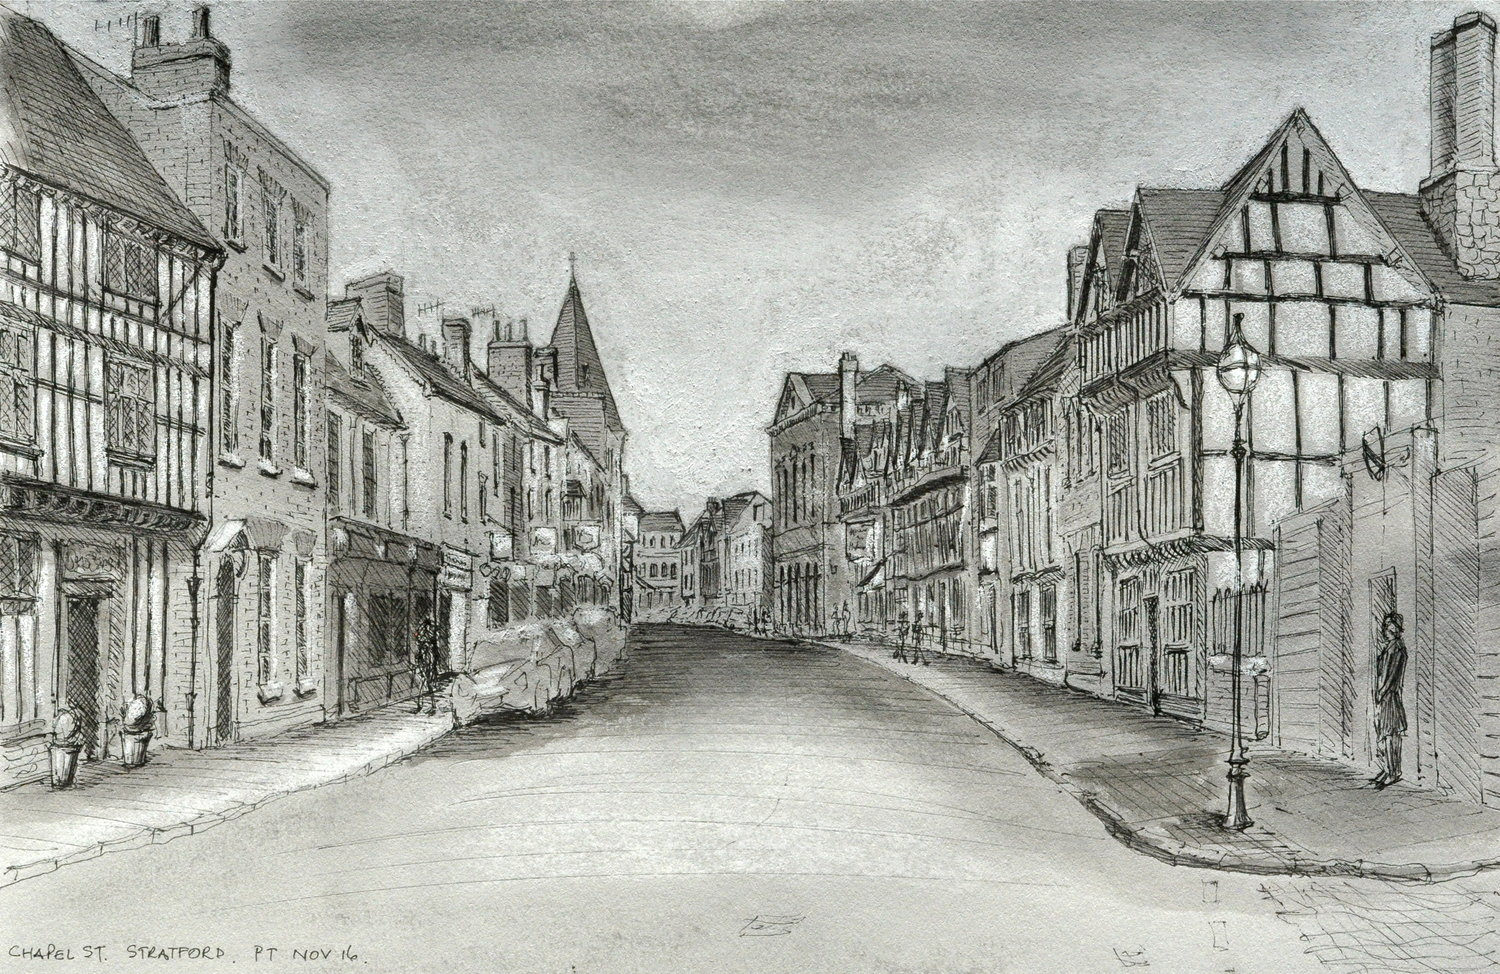 Chapel Street, Stratford-upon-Avon - Pen and ink with ink wash and chalk on Dreadnought Grey paper, 2016